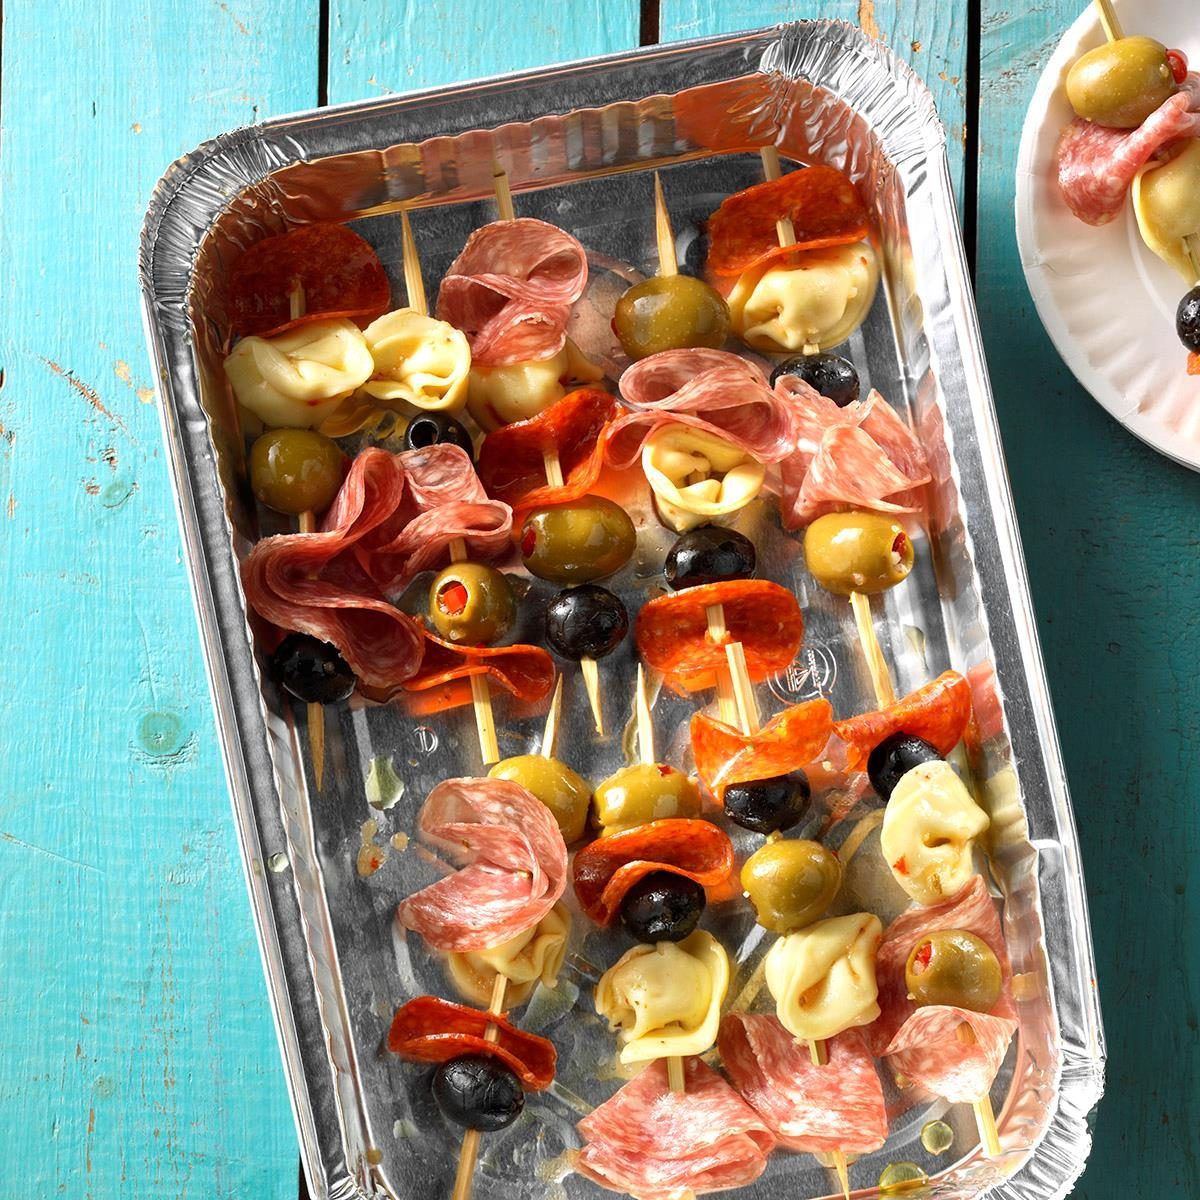 40 Easy Potluck Recipes For Your Graduation Party: Antipasto Kabobs Recipe